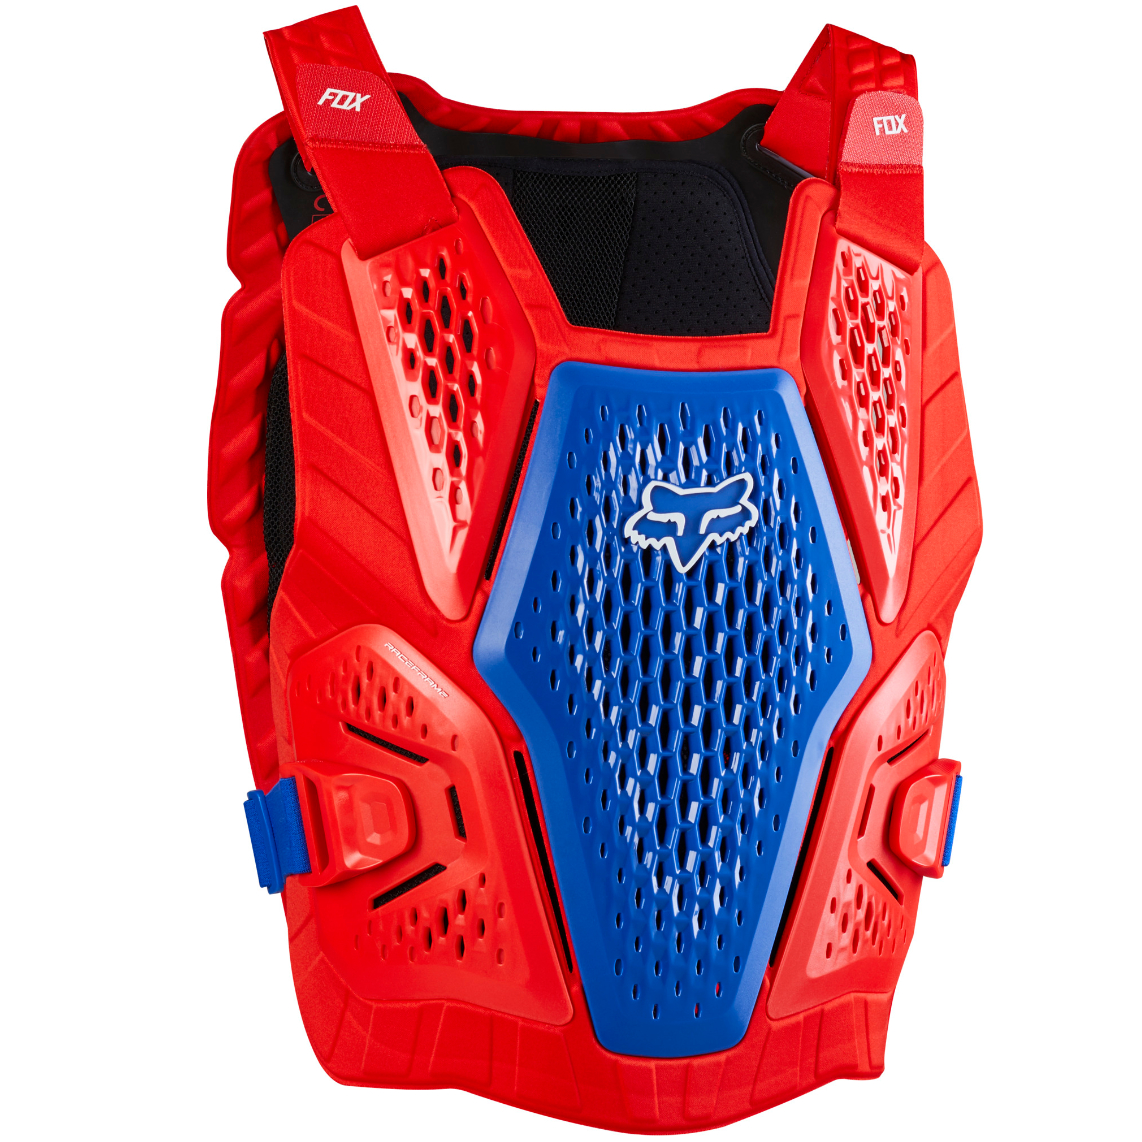 2021 fox raceframe impact guard blue/red - 24865 149 1